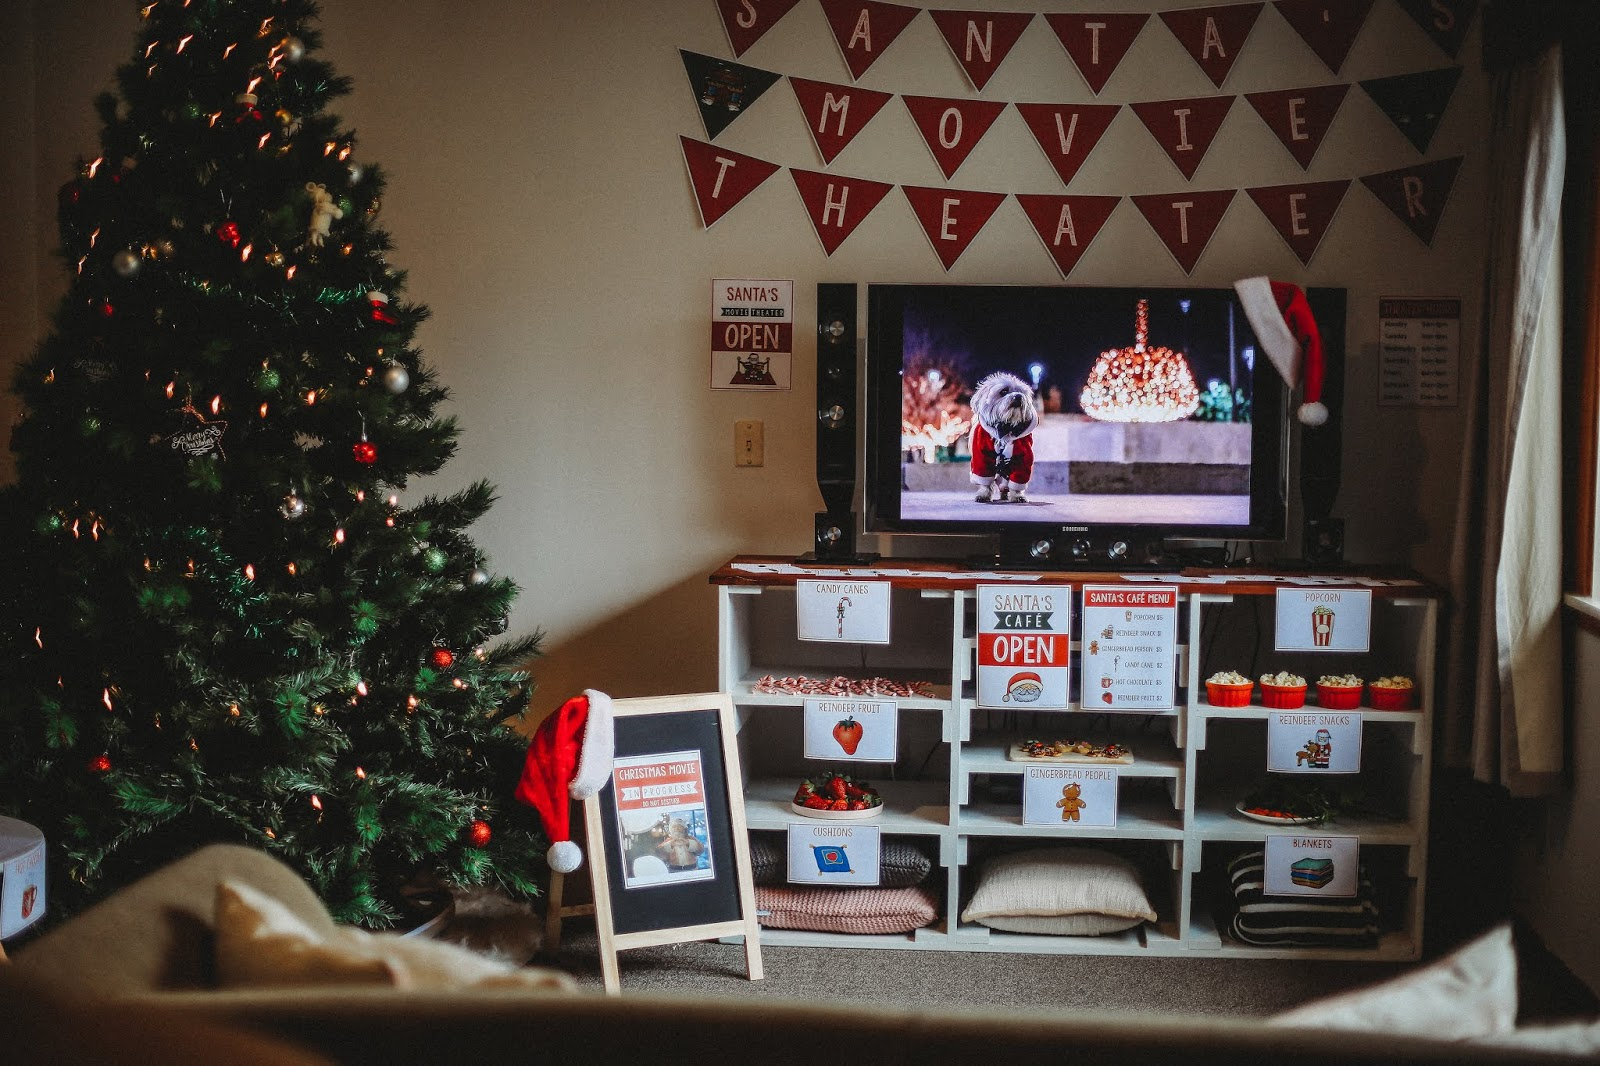 Beyond Imagination How To Have A Christmas Movie Day With Santa S Movie Theater